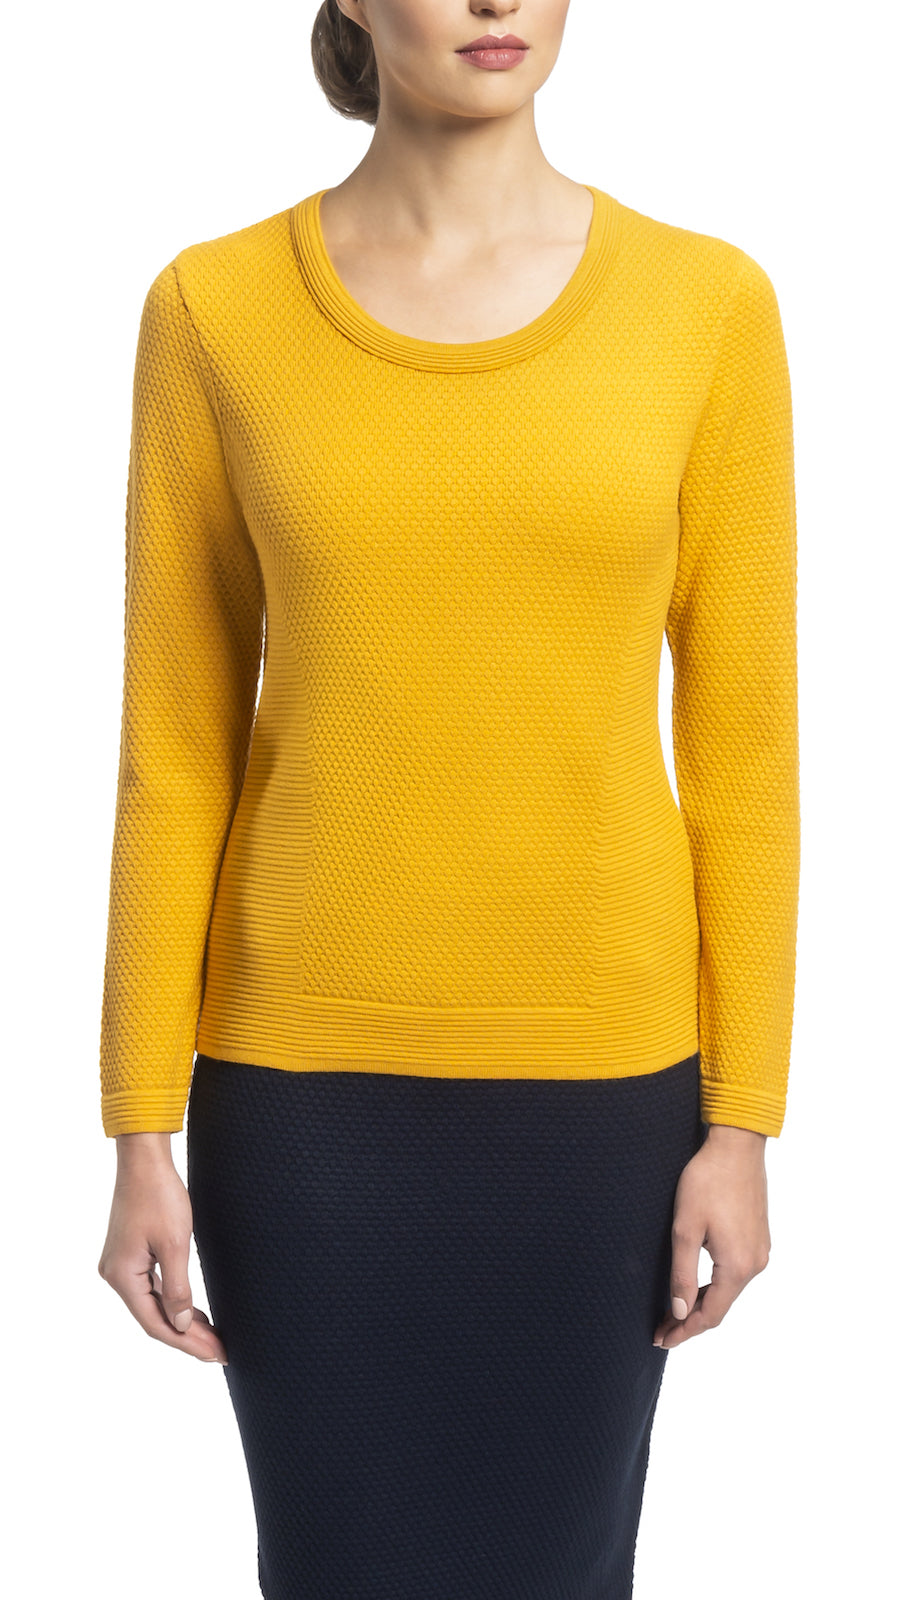 CONTEMPO Helene knitted top, Gold